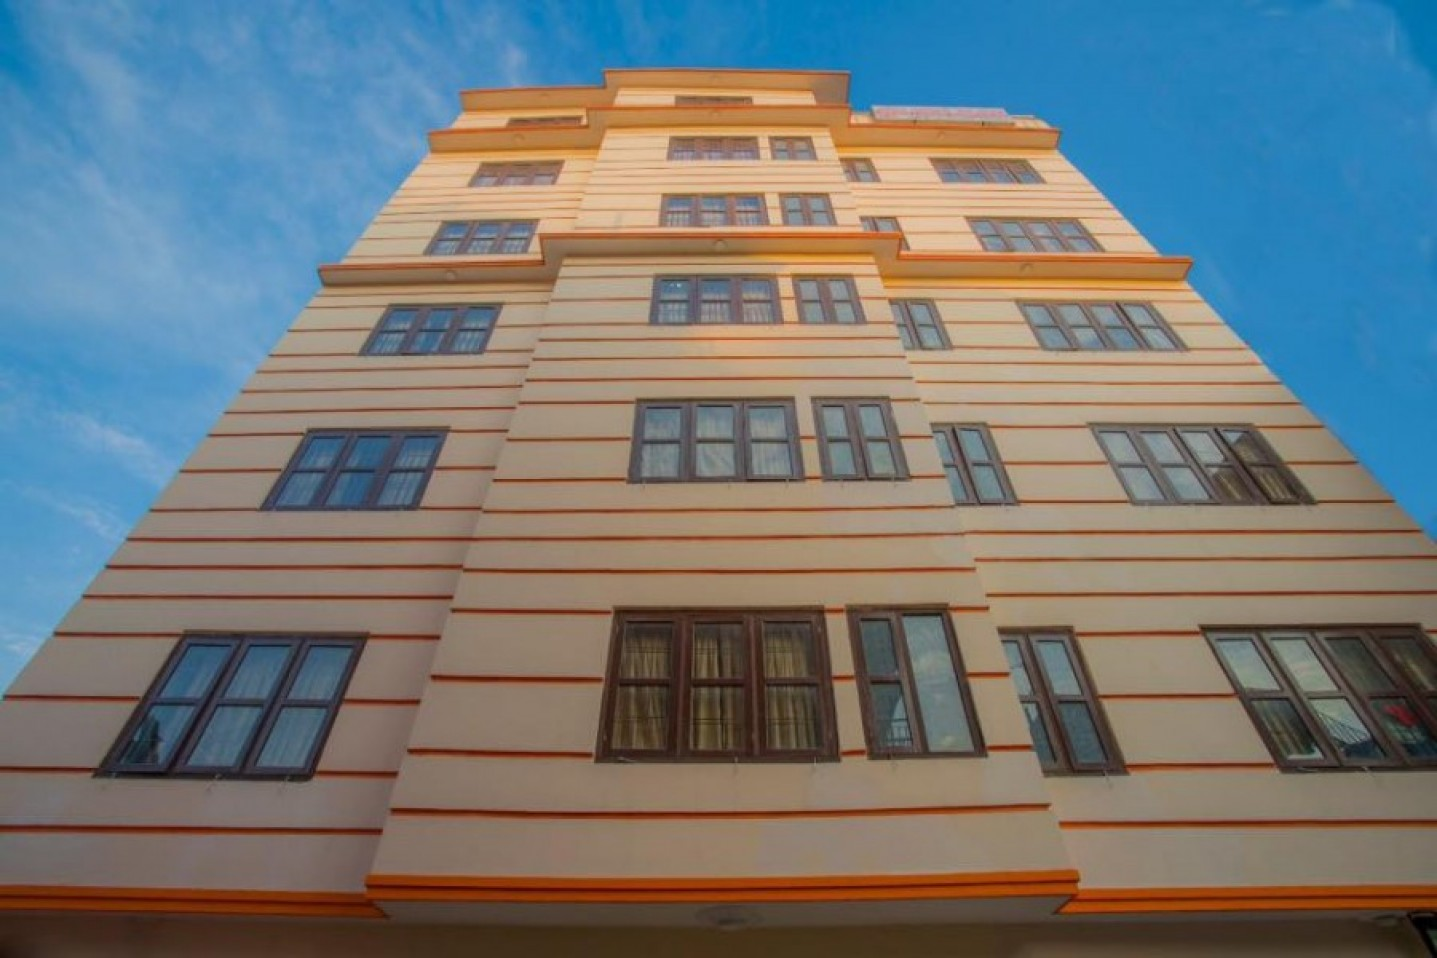 Waling Fulbari guest house building in New Bus Park